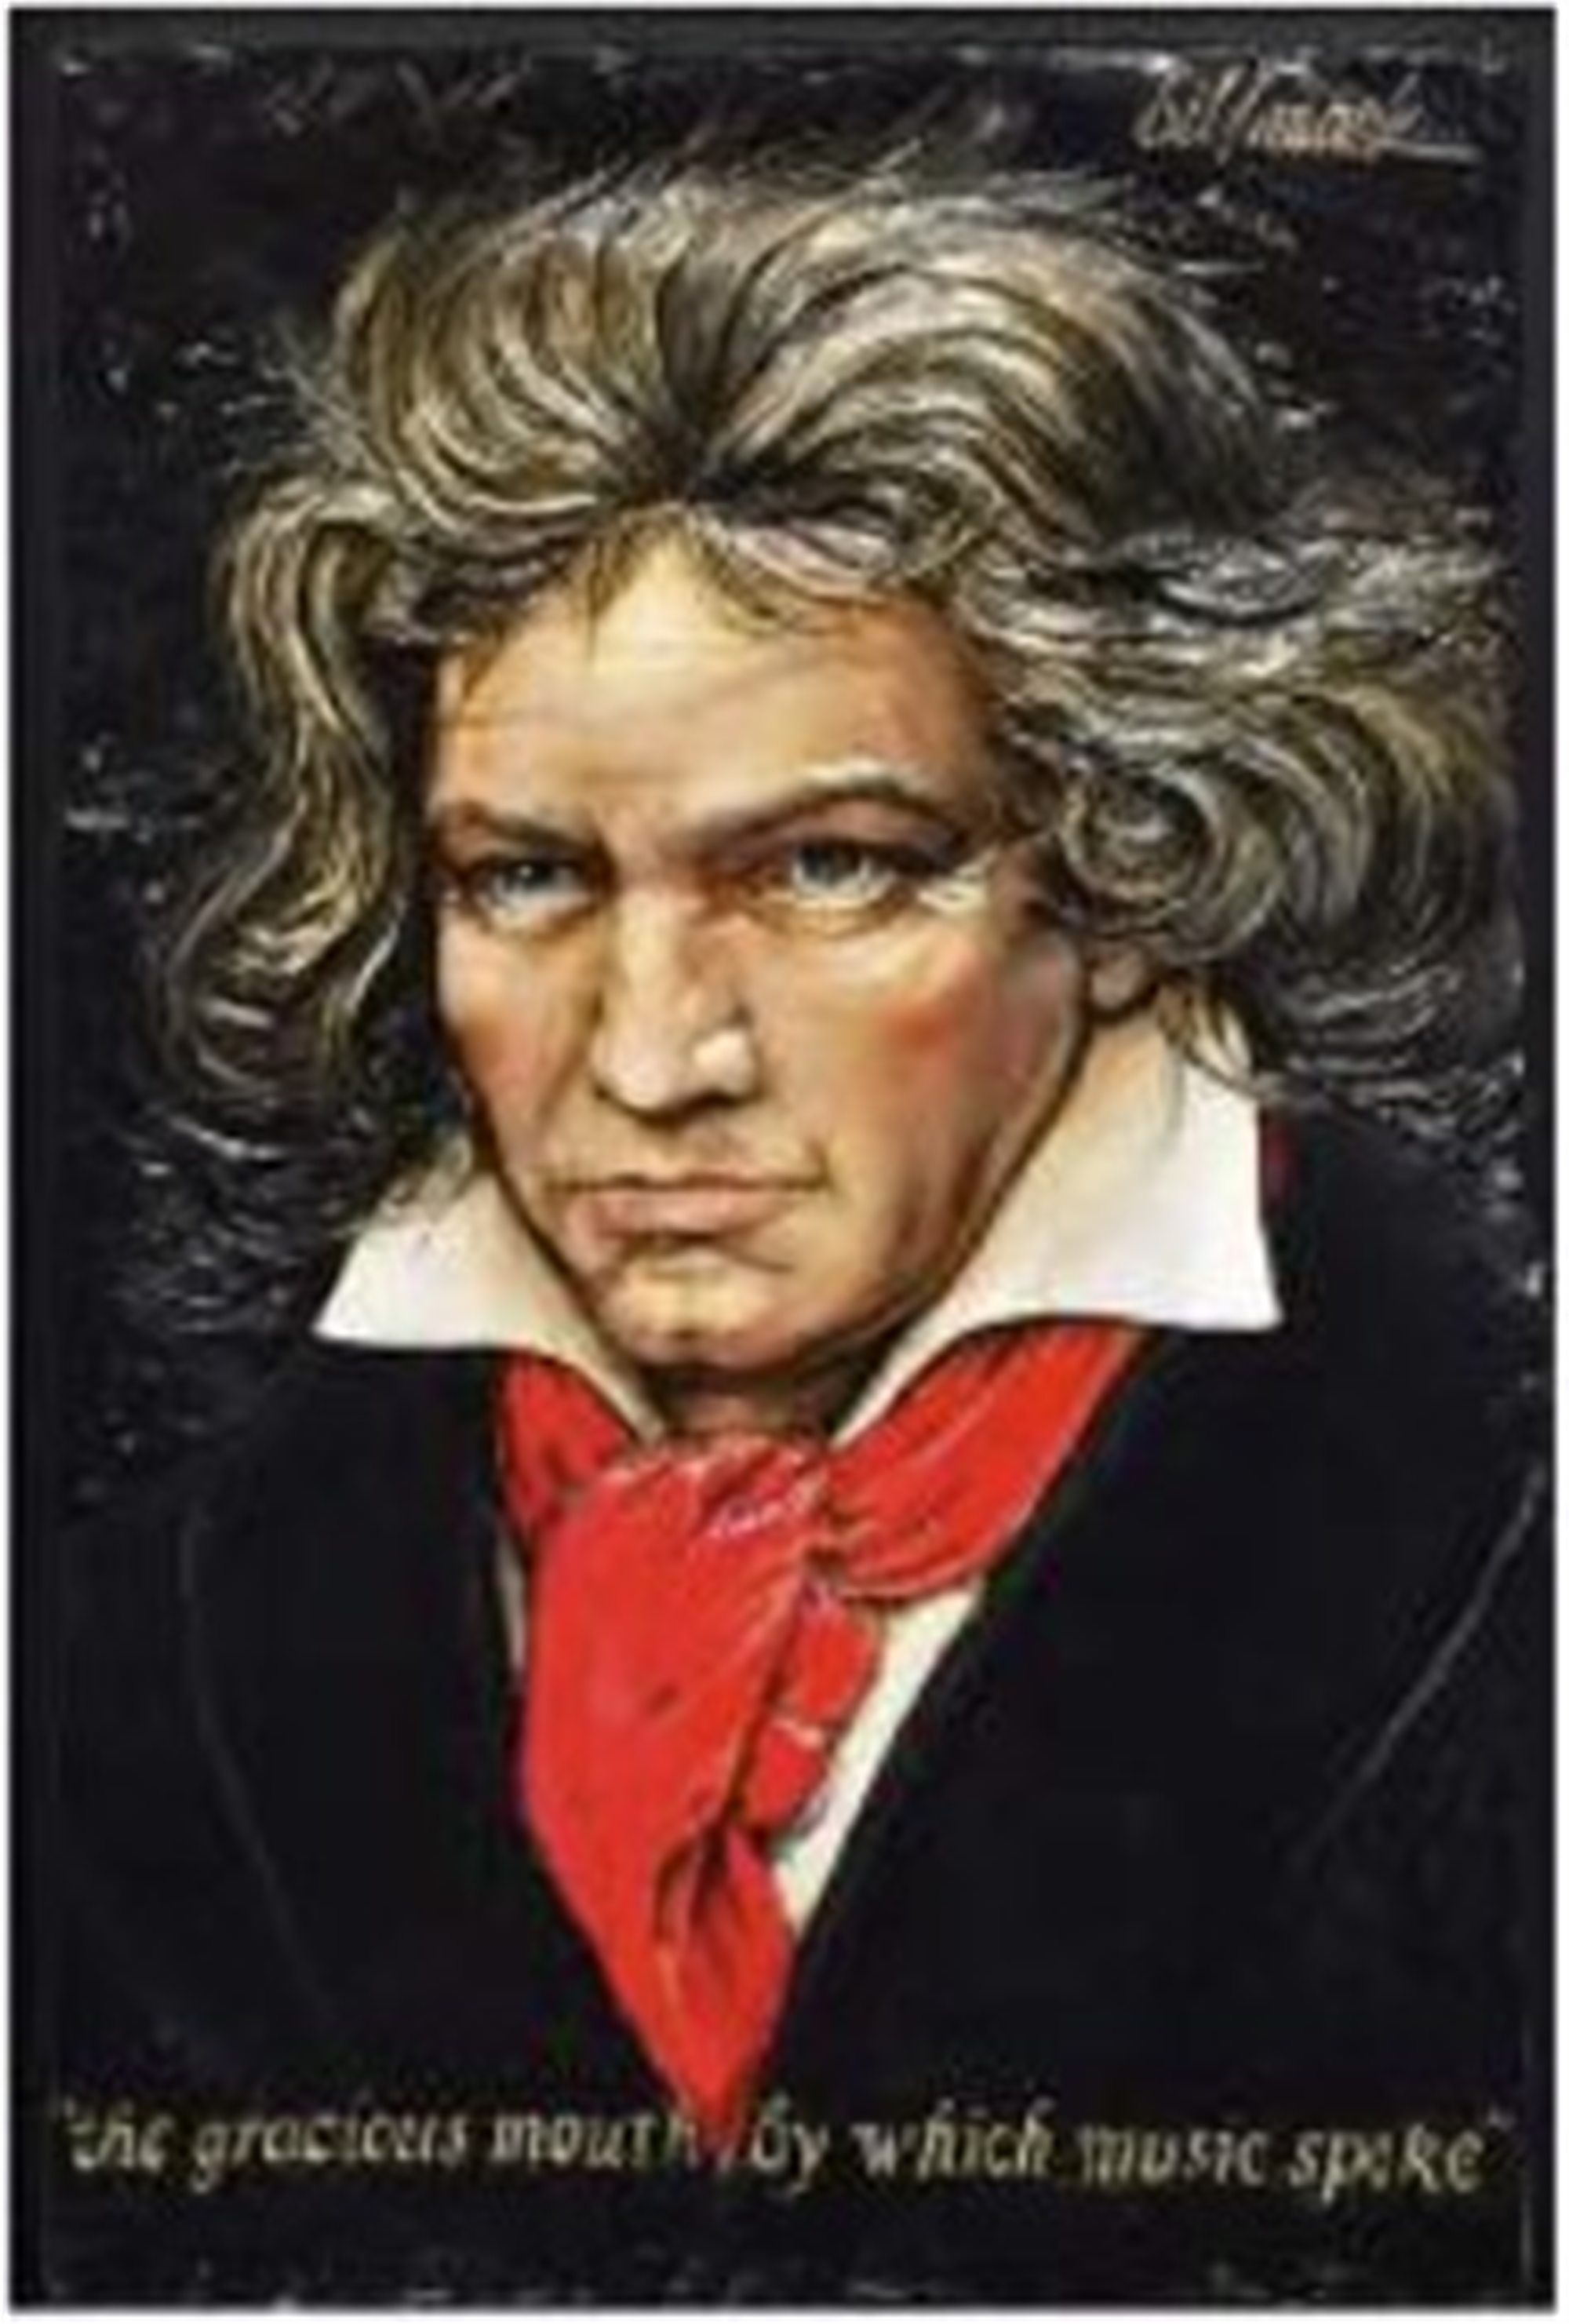 Musicmaster Beethoven by Bill Mack